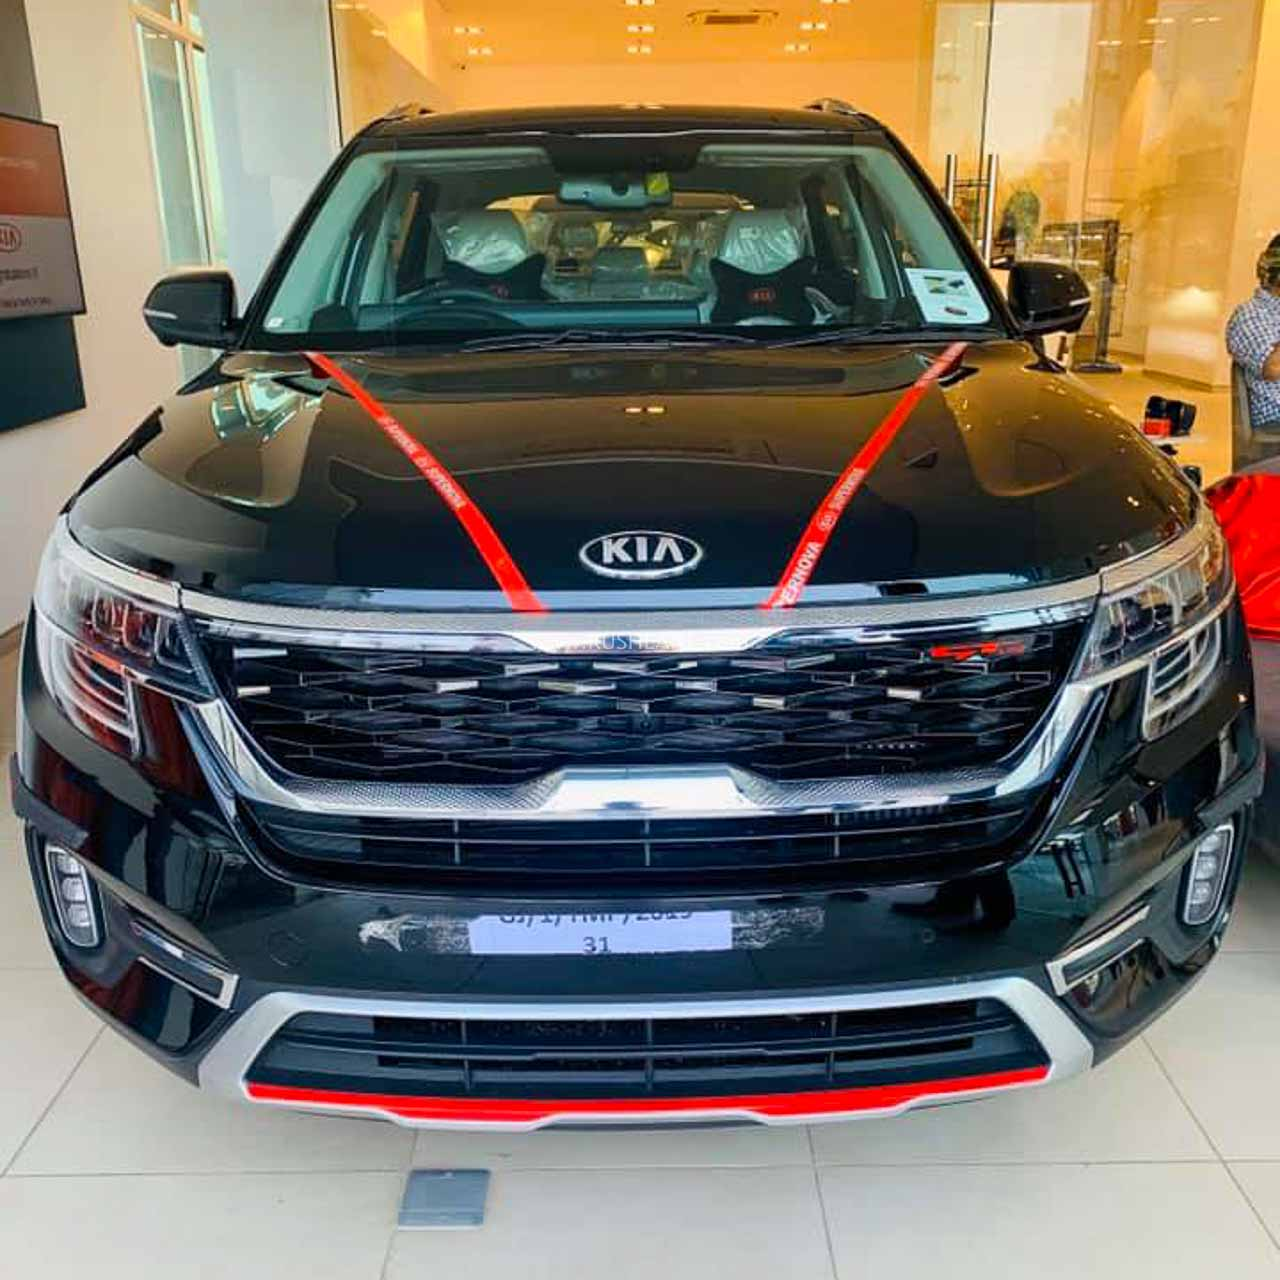 New 2020 Kia Seltos with added features launched